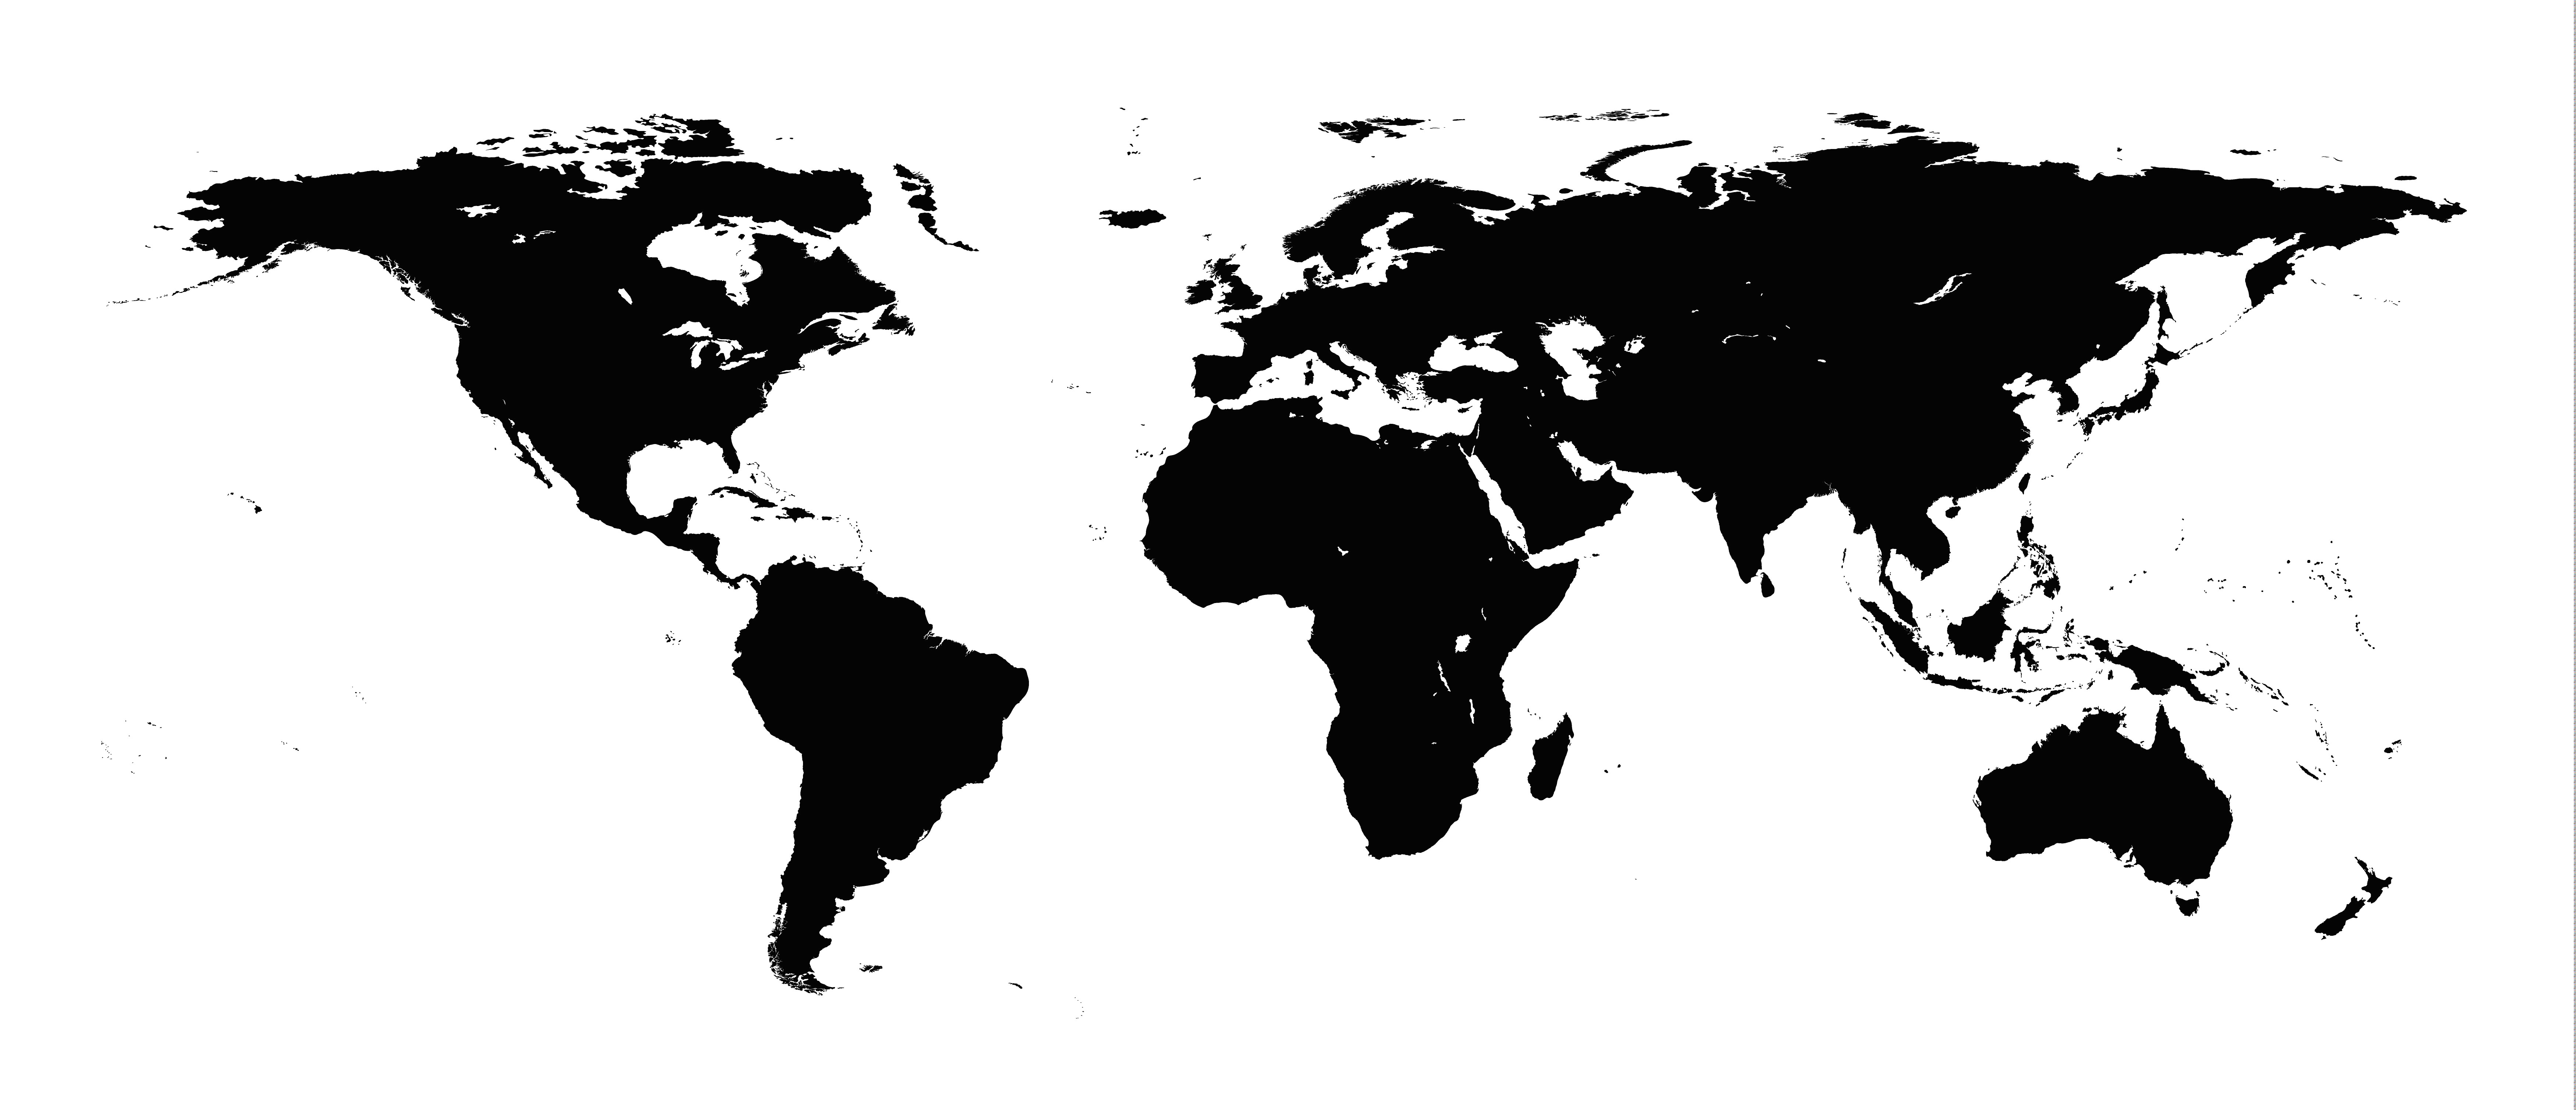 Map of the world - Download Free Vectors, Clipart Graphics ...